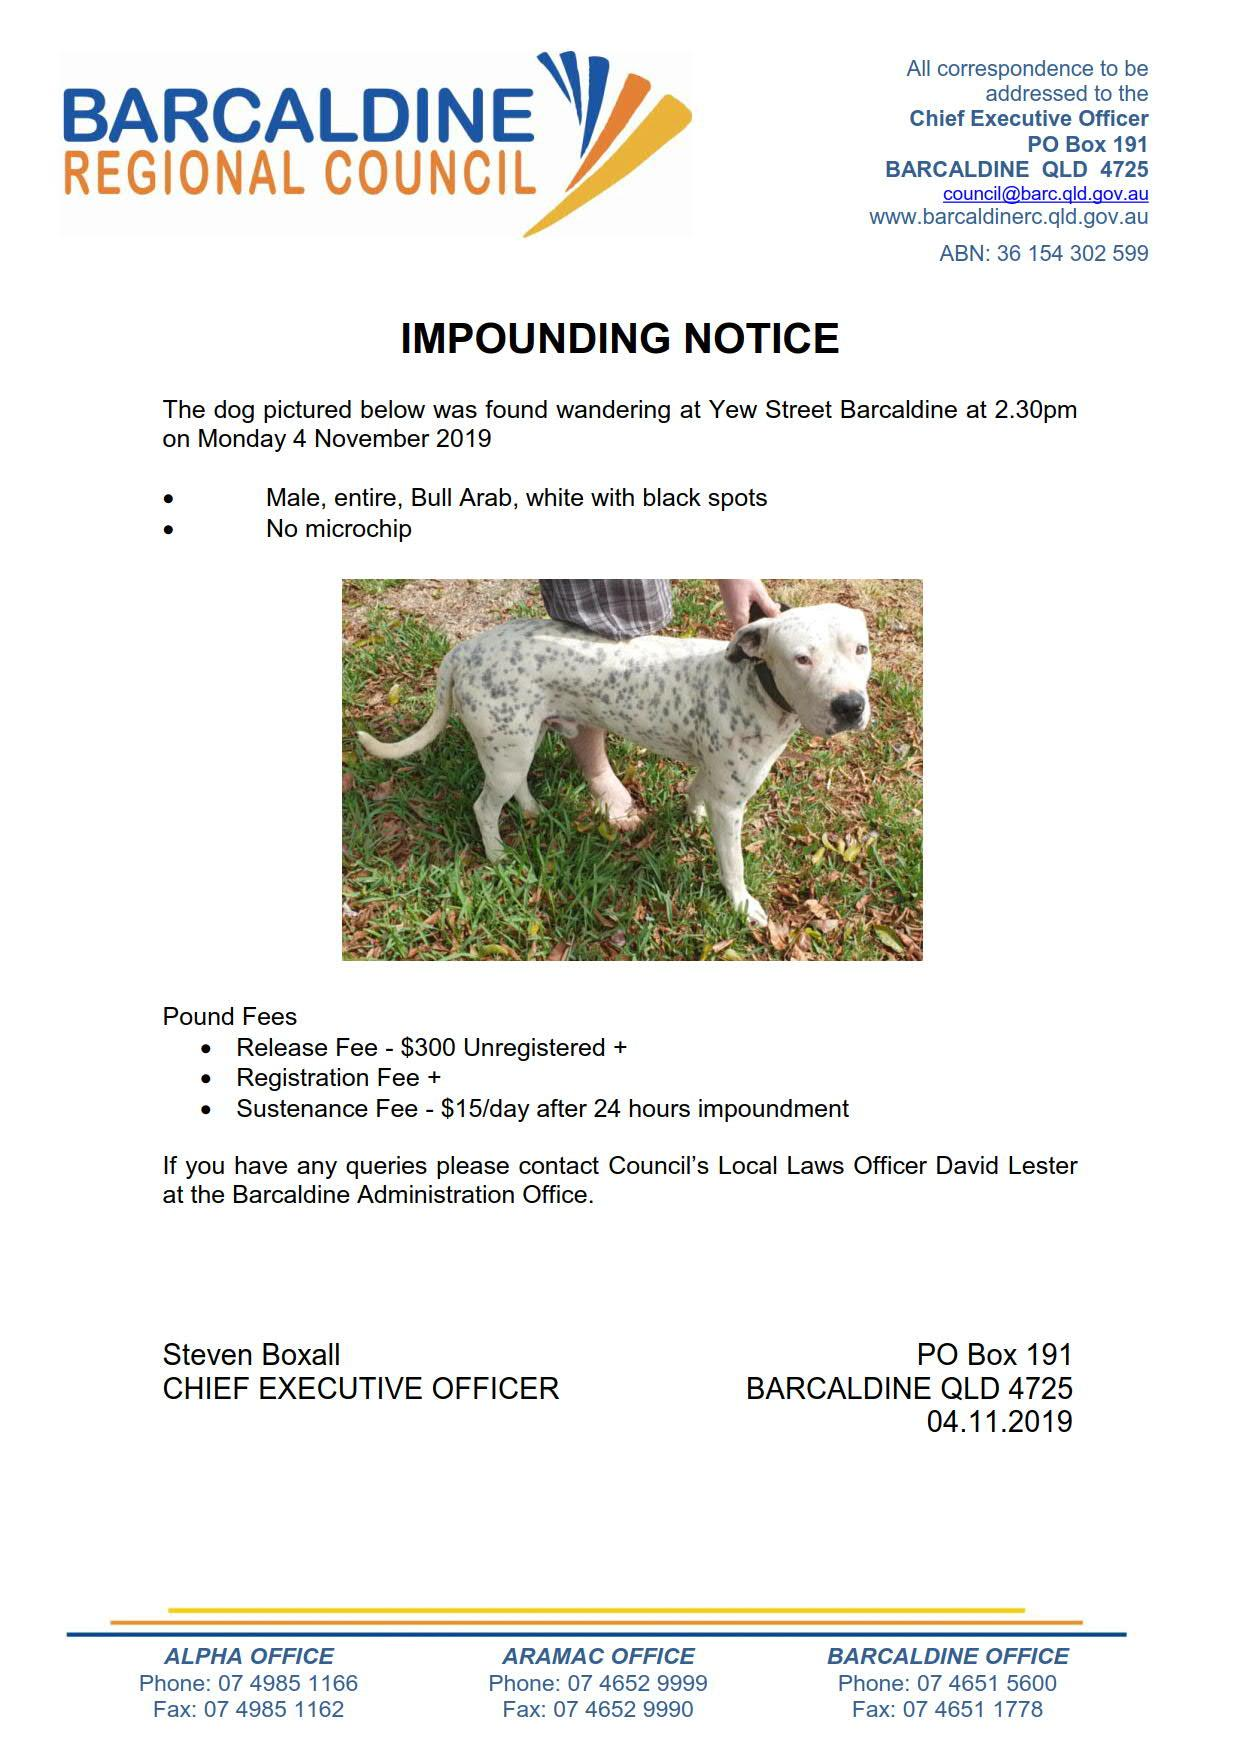 Impound notice - male, entire, white with black spots Bull Arab impounded in Barcaldine